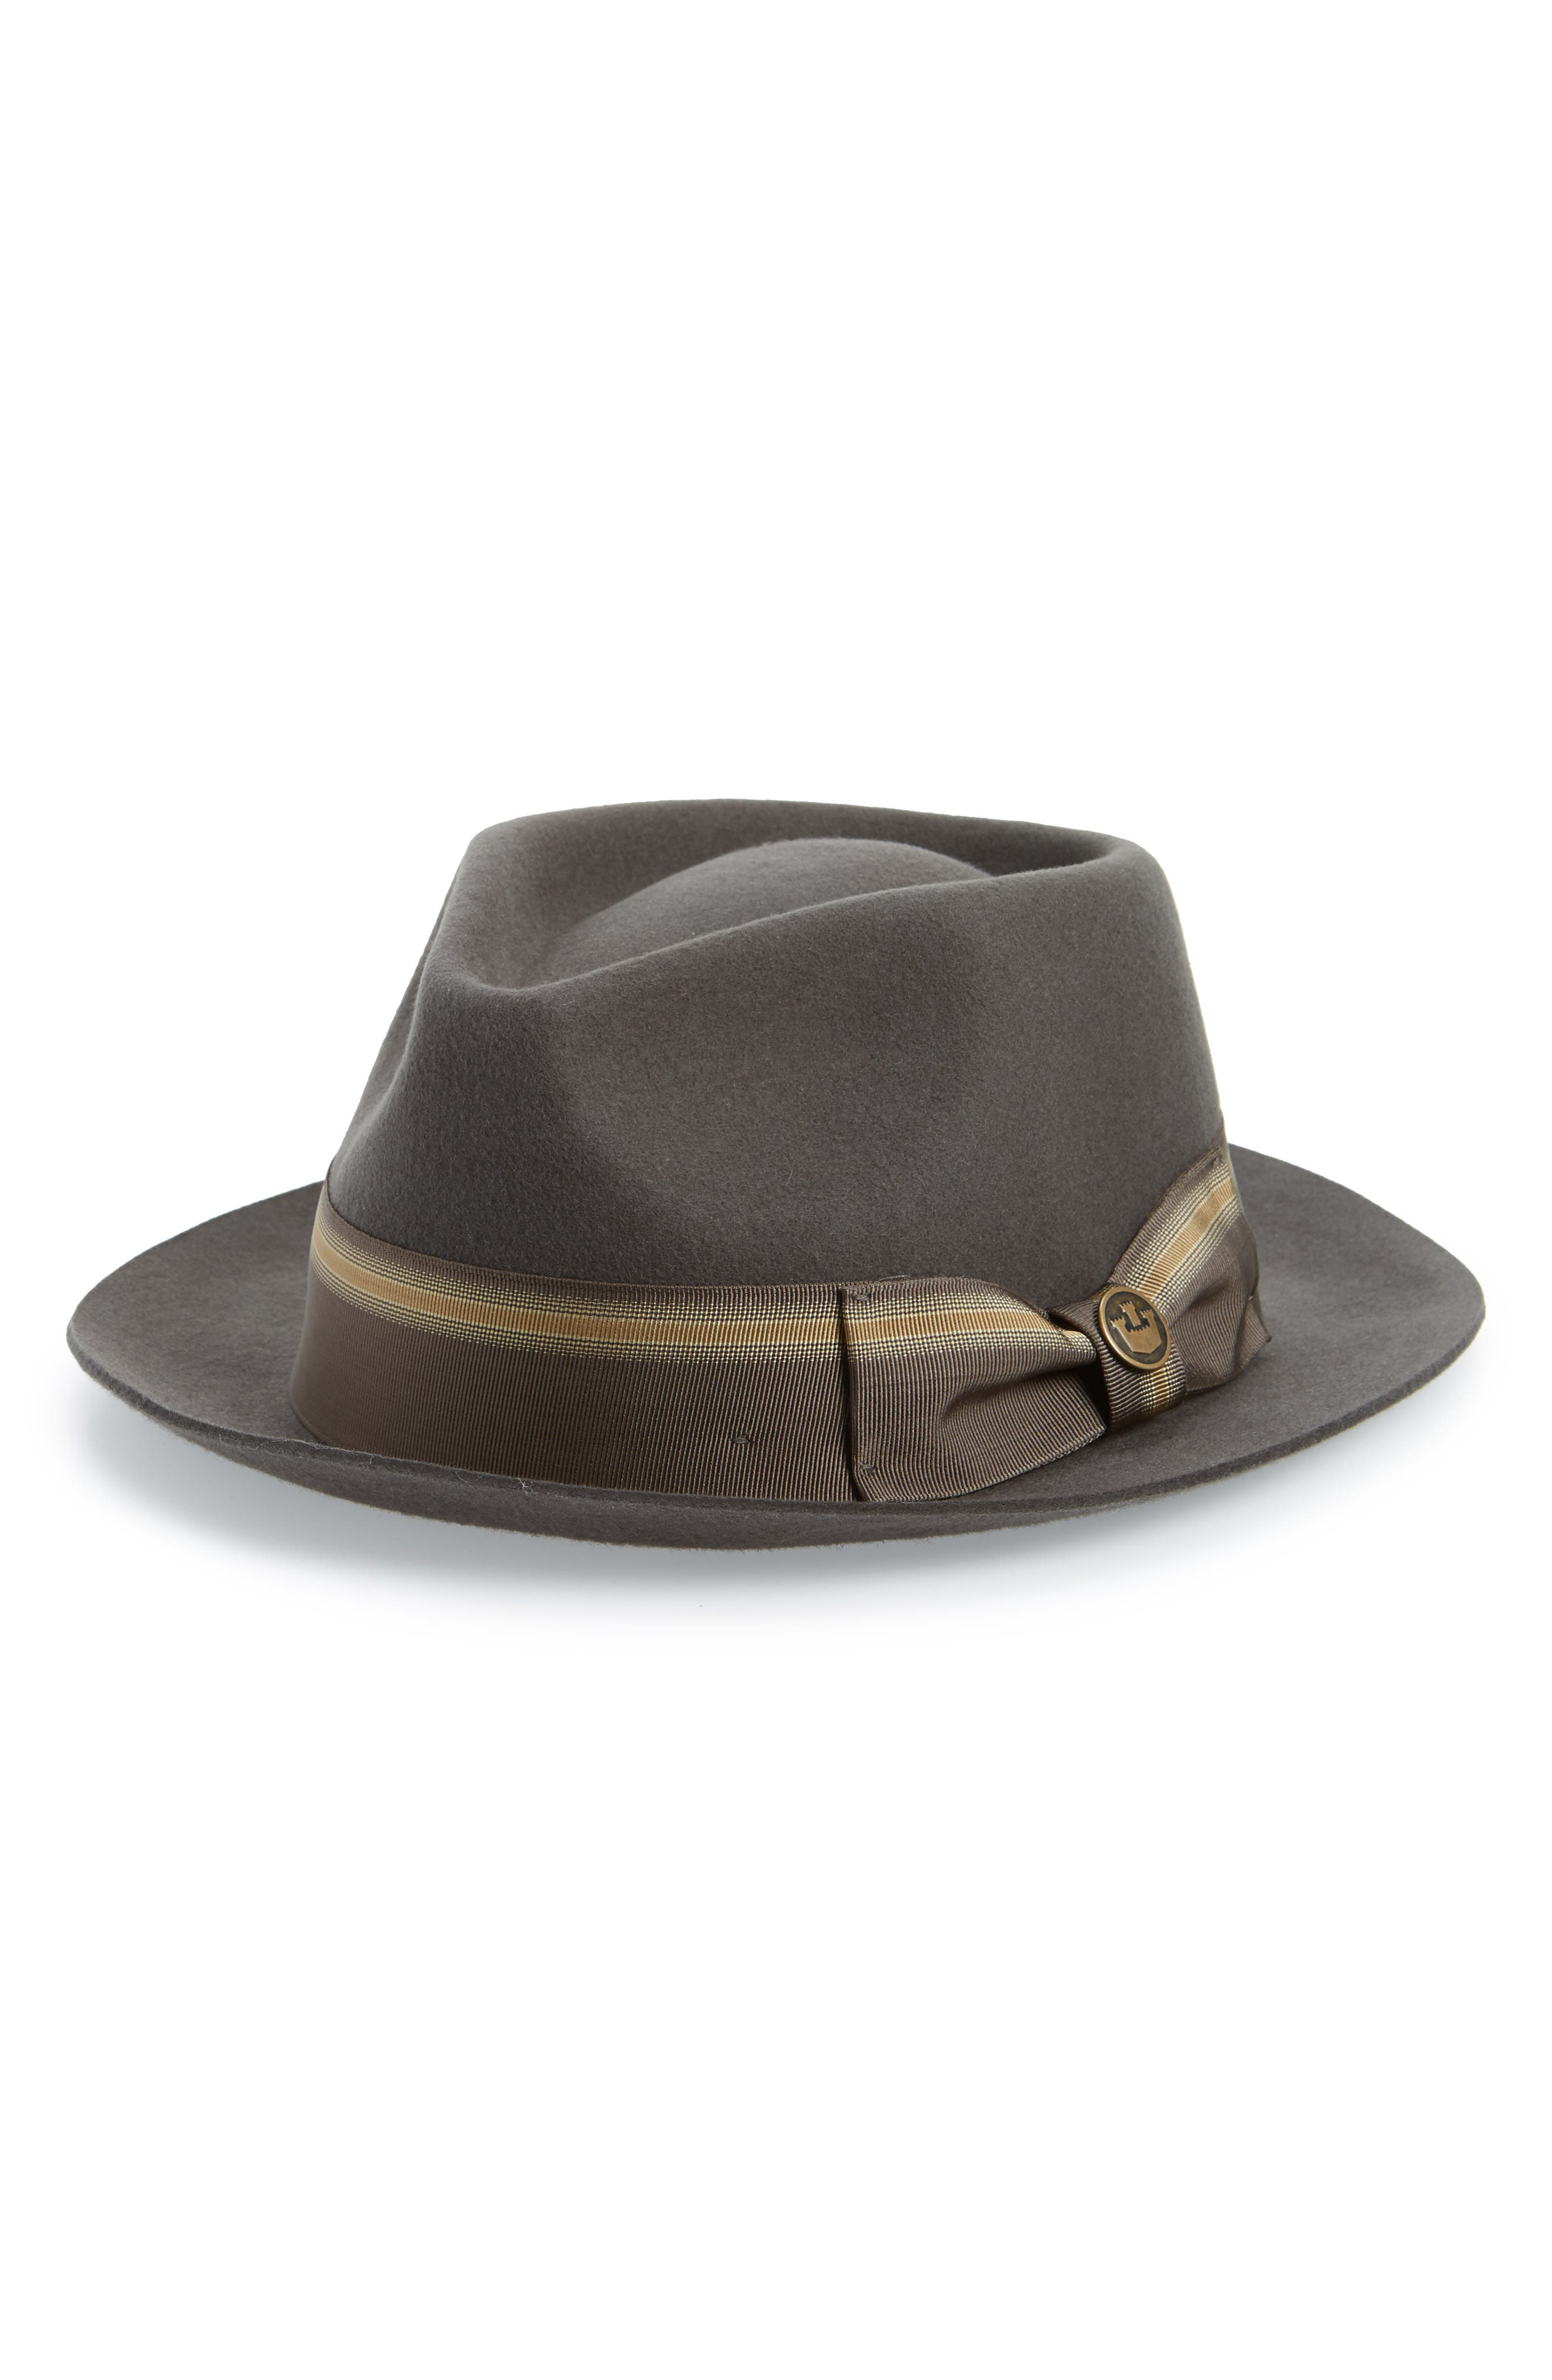 Star Boy Fedora,                             Main thumbnail 1, color,                             GRAY